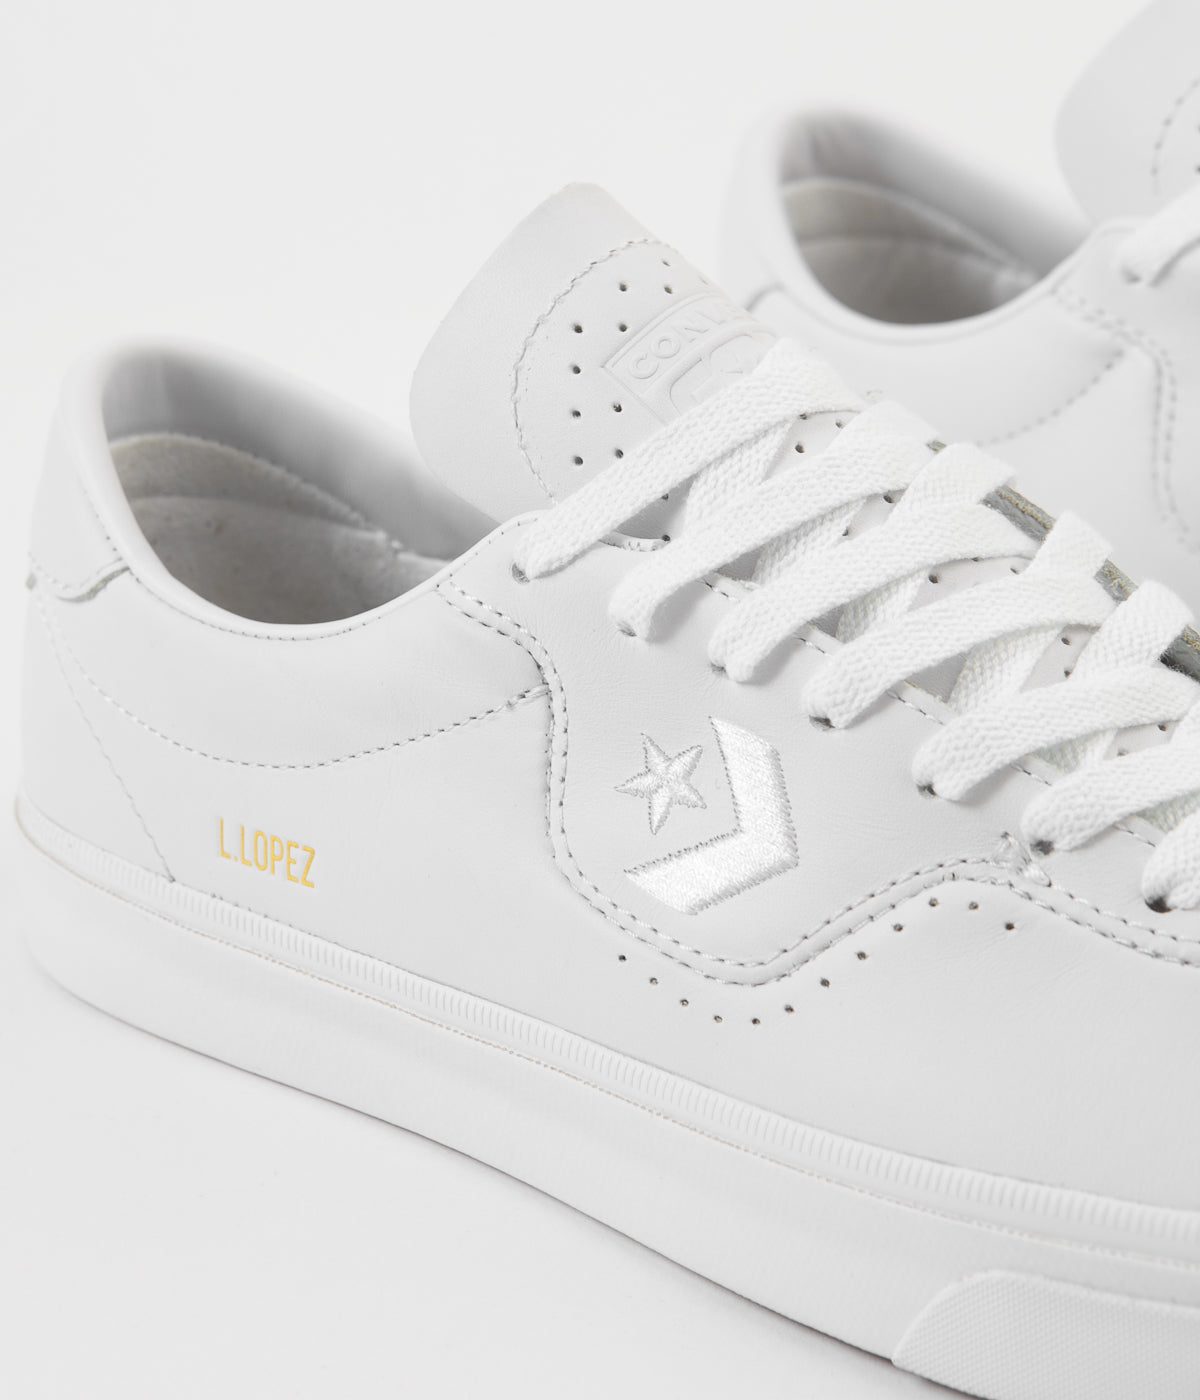 Converse Louie Lopez Pro Ox Shoes - White / White / White